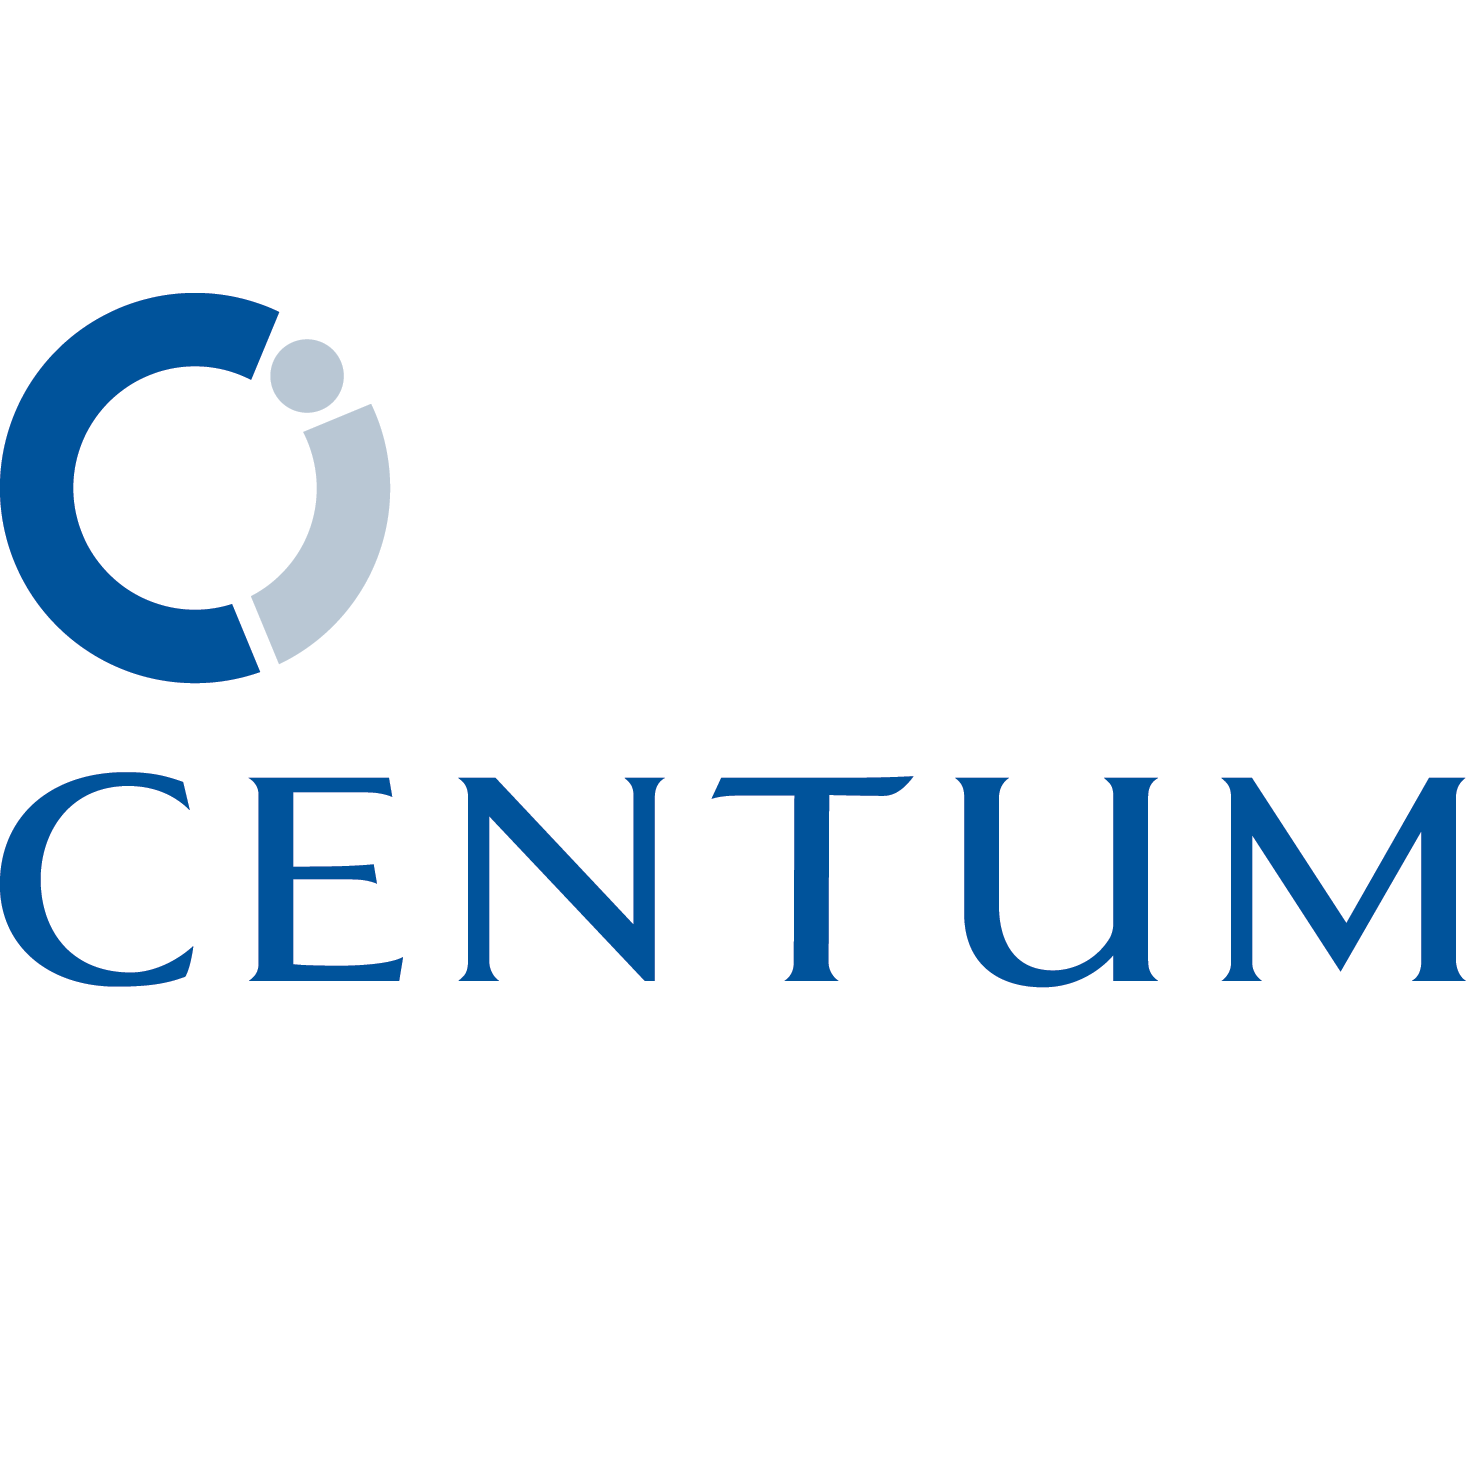 Centum investment bank best online sports betting sites in usa